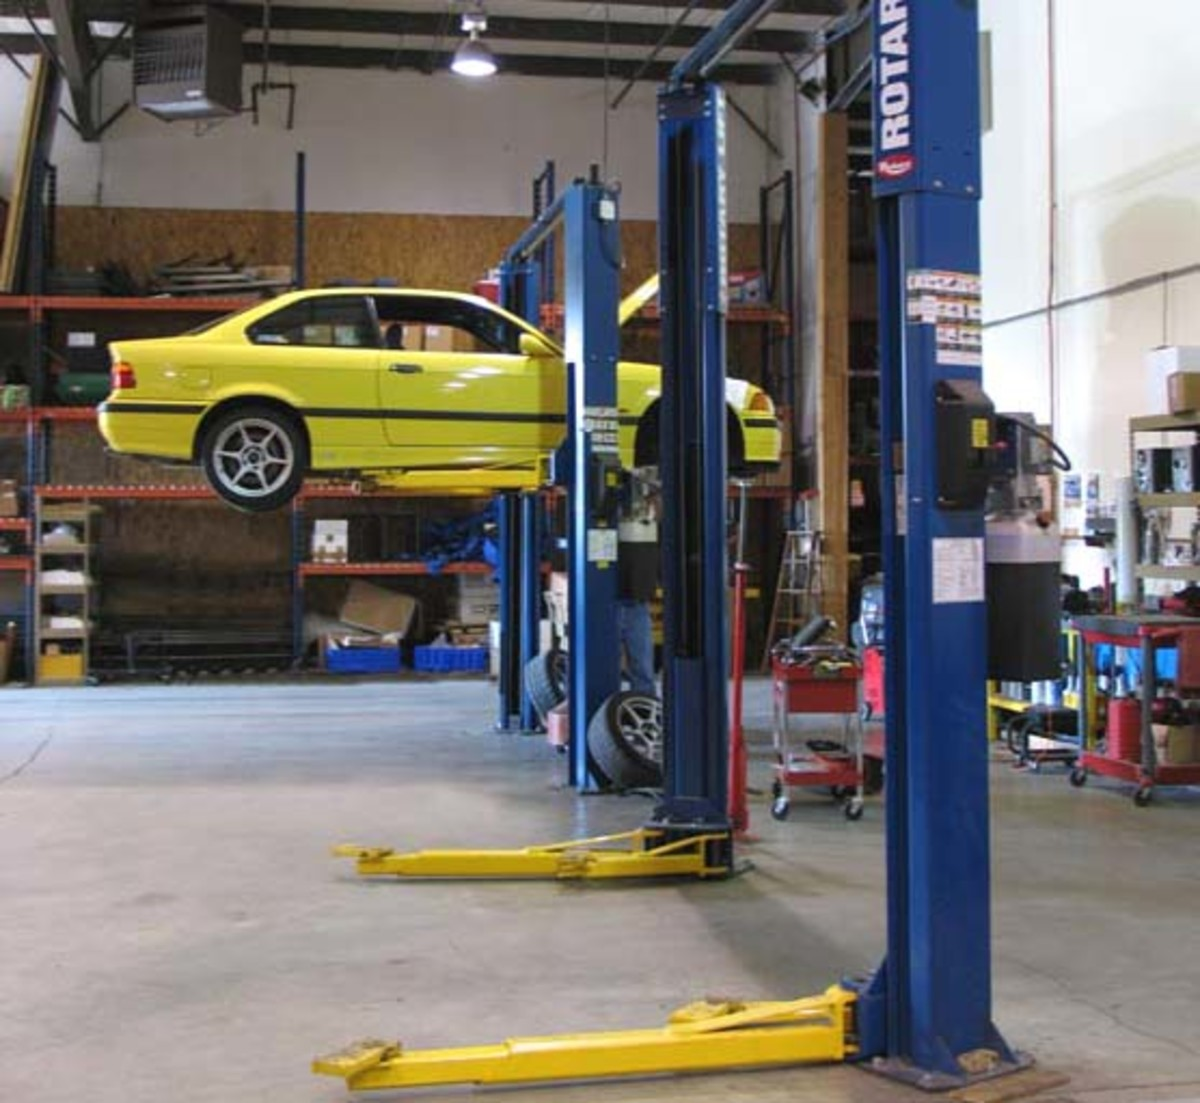 Nice Clean Professional Shop with Plenty of New Automobile Repair Lifts